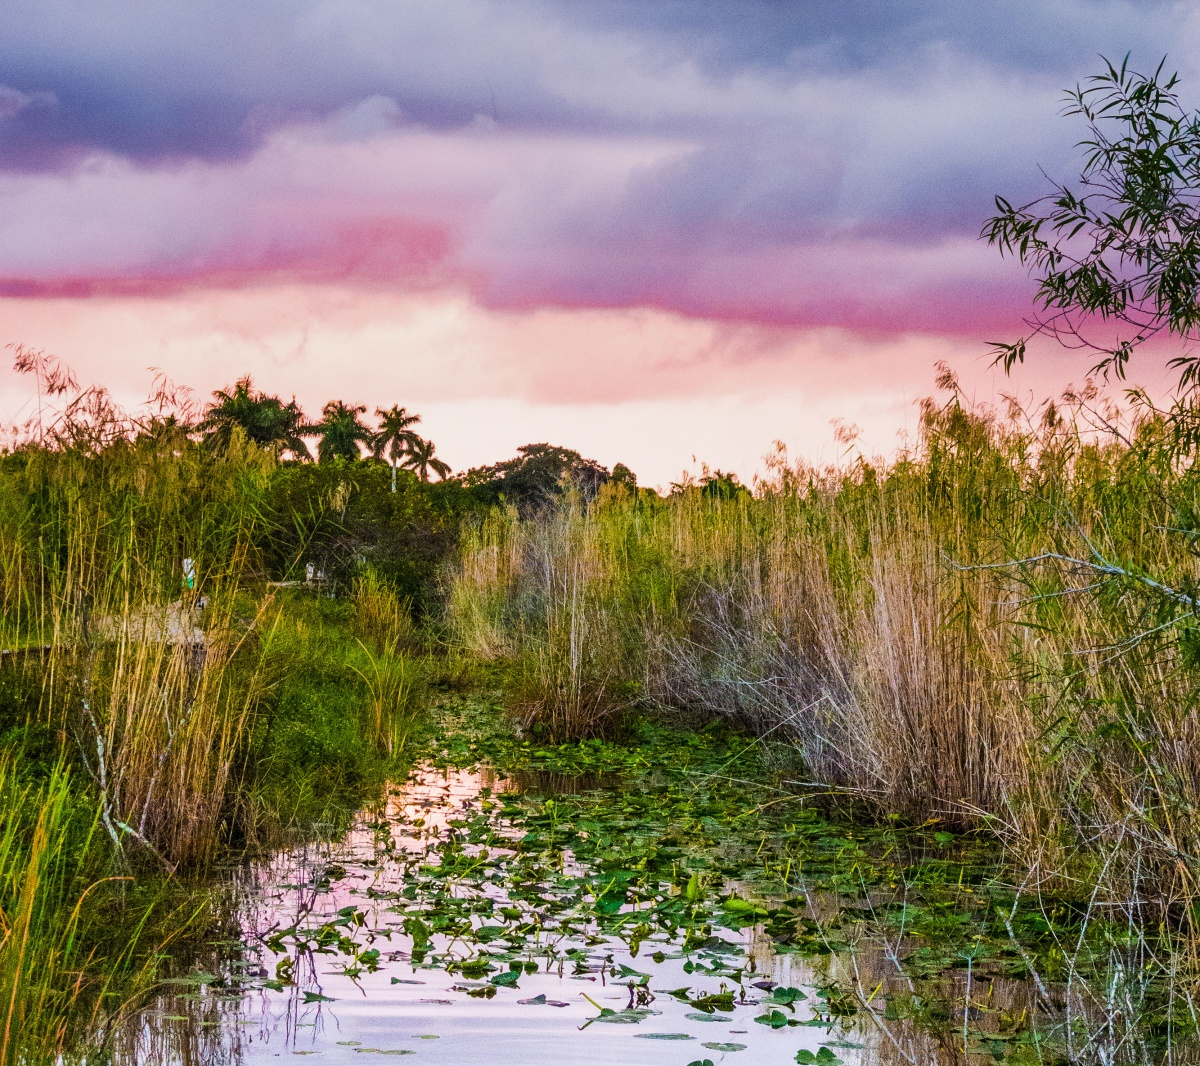 A pink stormy sky over a green wetlands